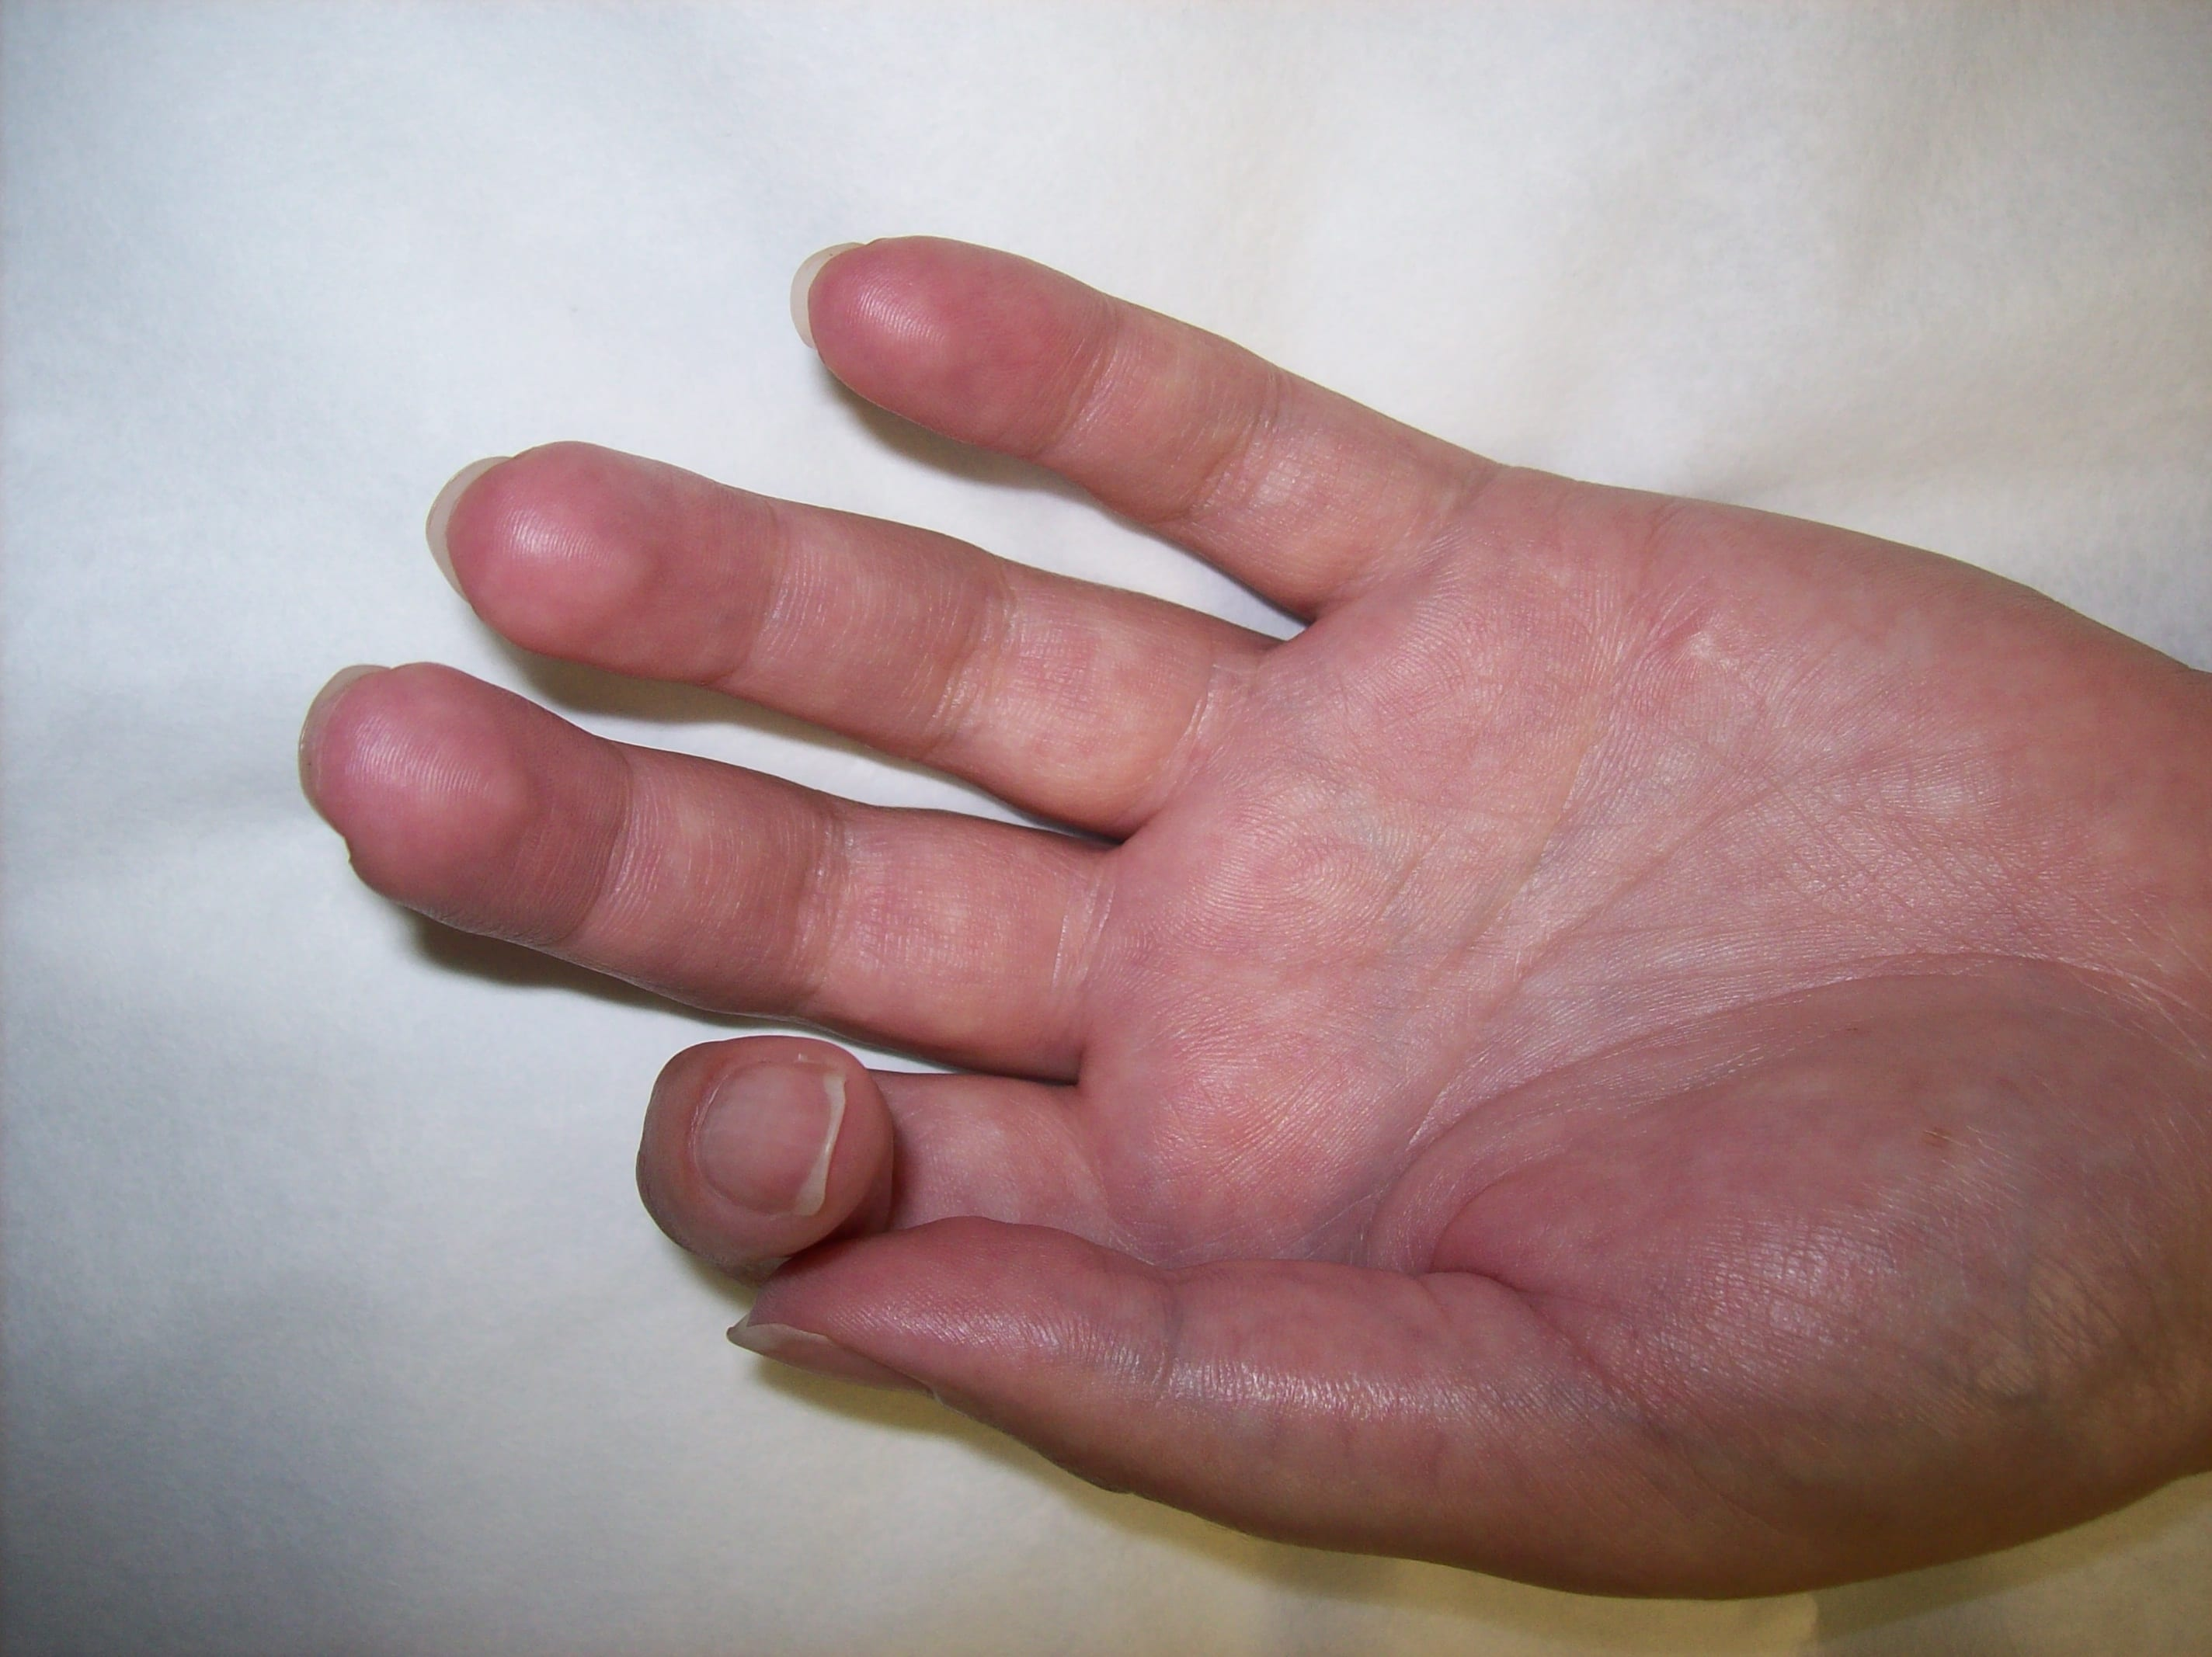 Rsd Crps Skin Changes Respond To Stem Cell Piedmont